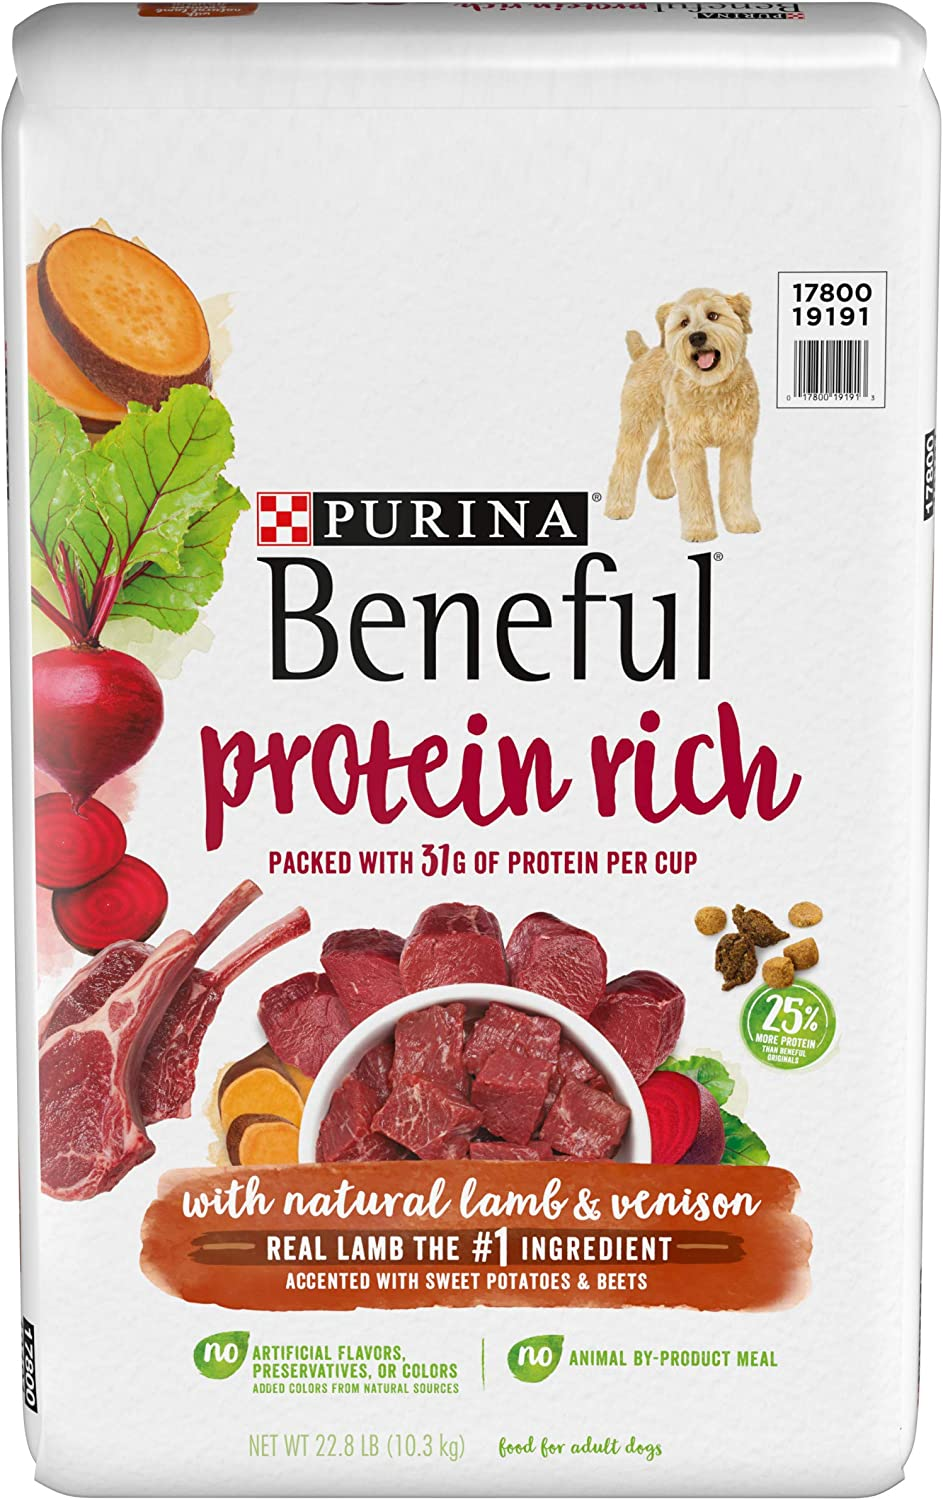 Purina Beneful Dry Dog Food, Protein Rich with Natural Lamb & Venison - 22.8 lb. Bag